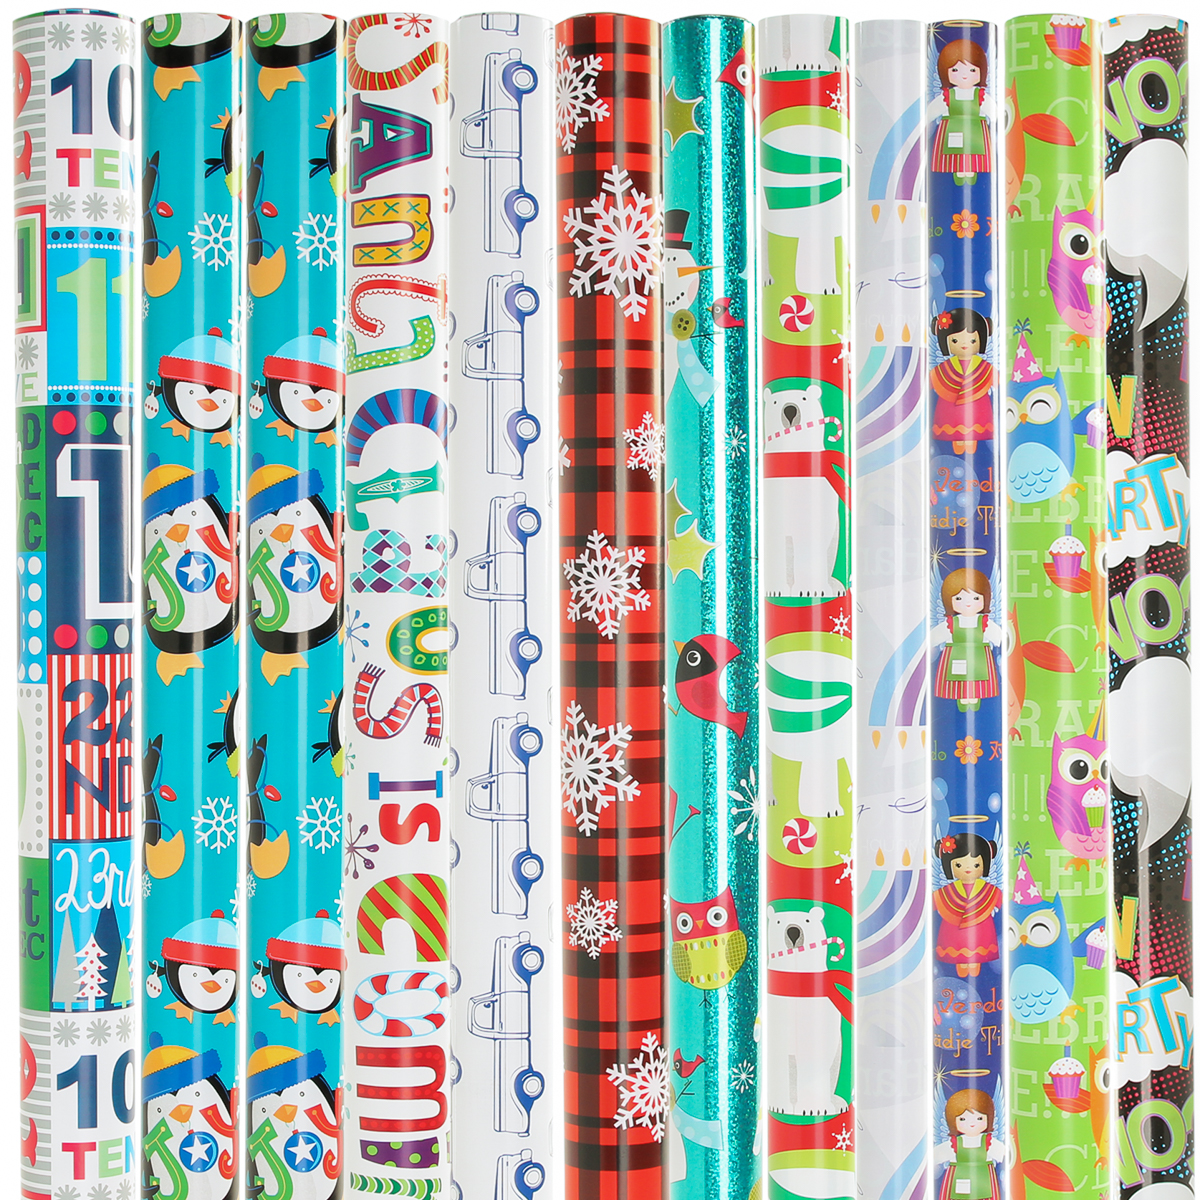 Wrapping Paper (12 Pack) with Variety Christmas Wrapping Paper, Xmas Wrapping Paper Rolls, All Occasion Party Supplies Gift Wrap Paper